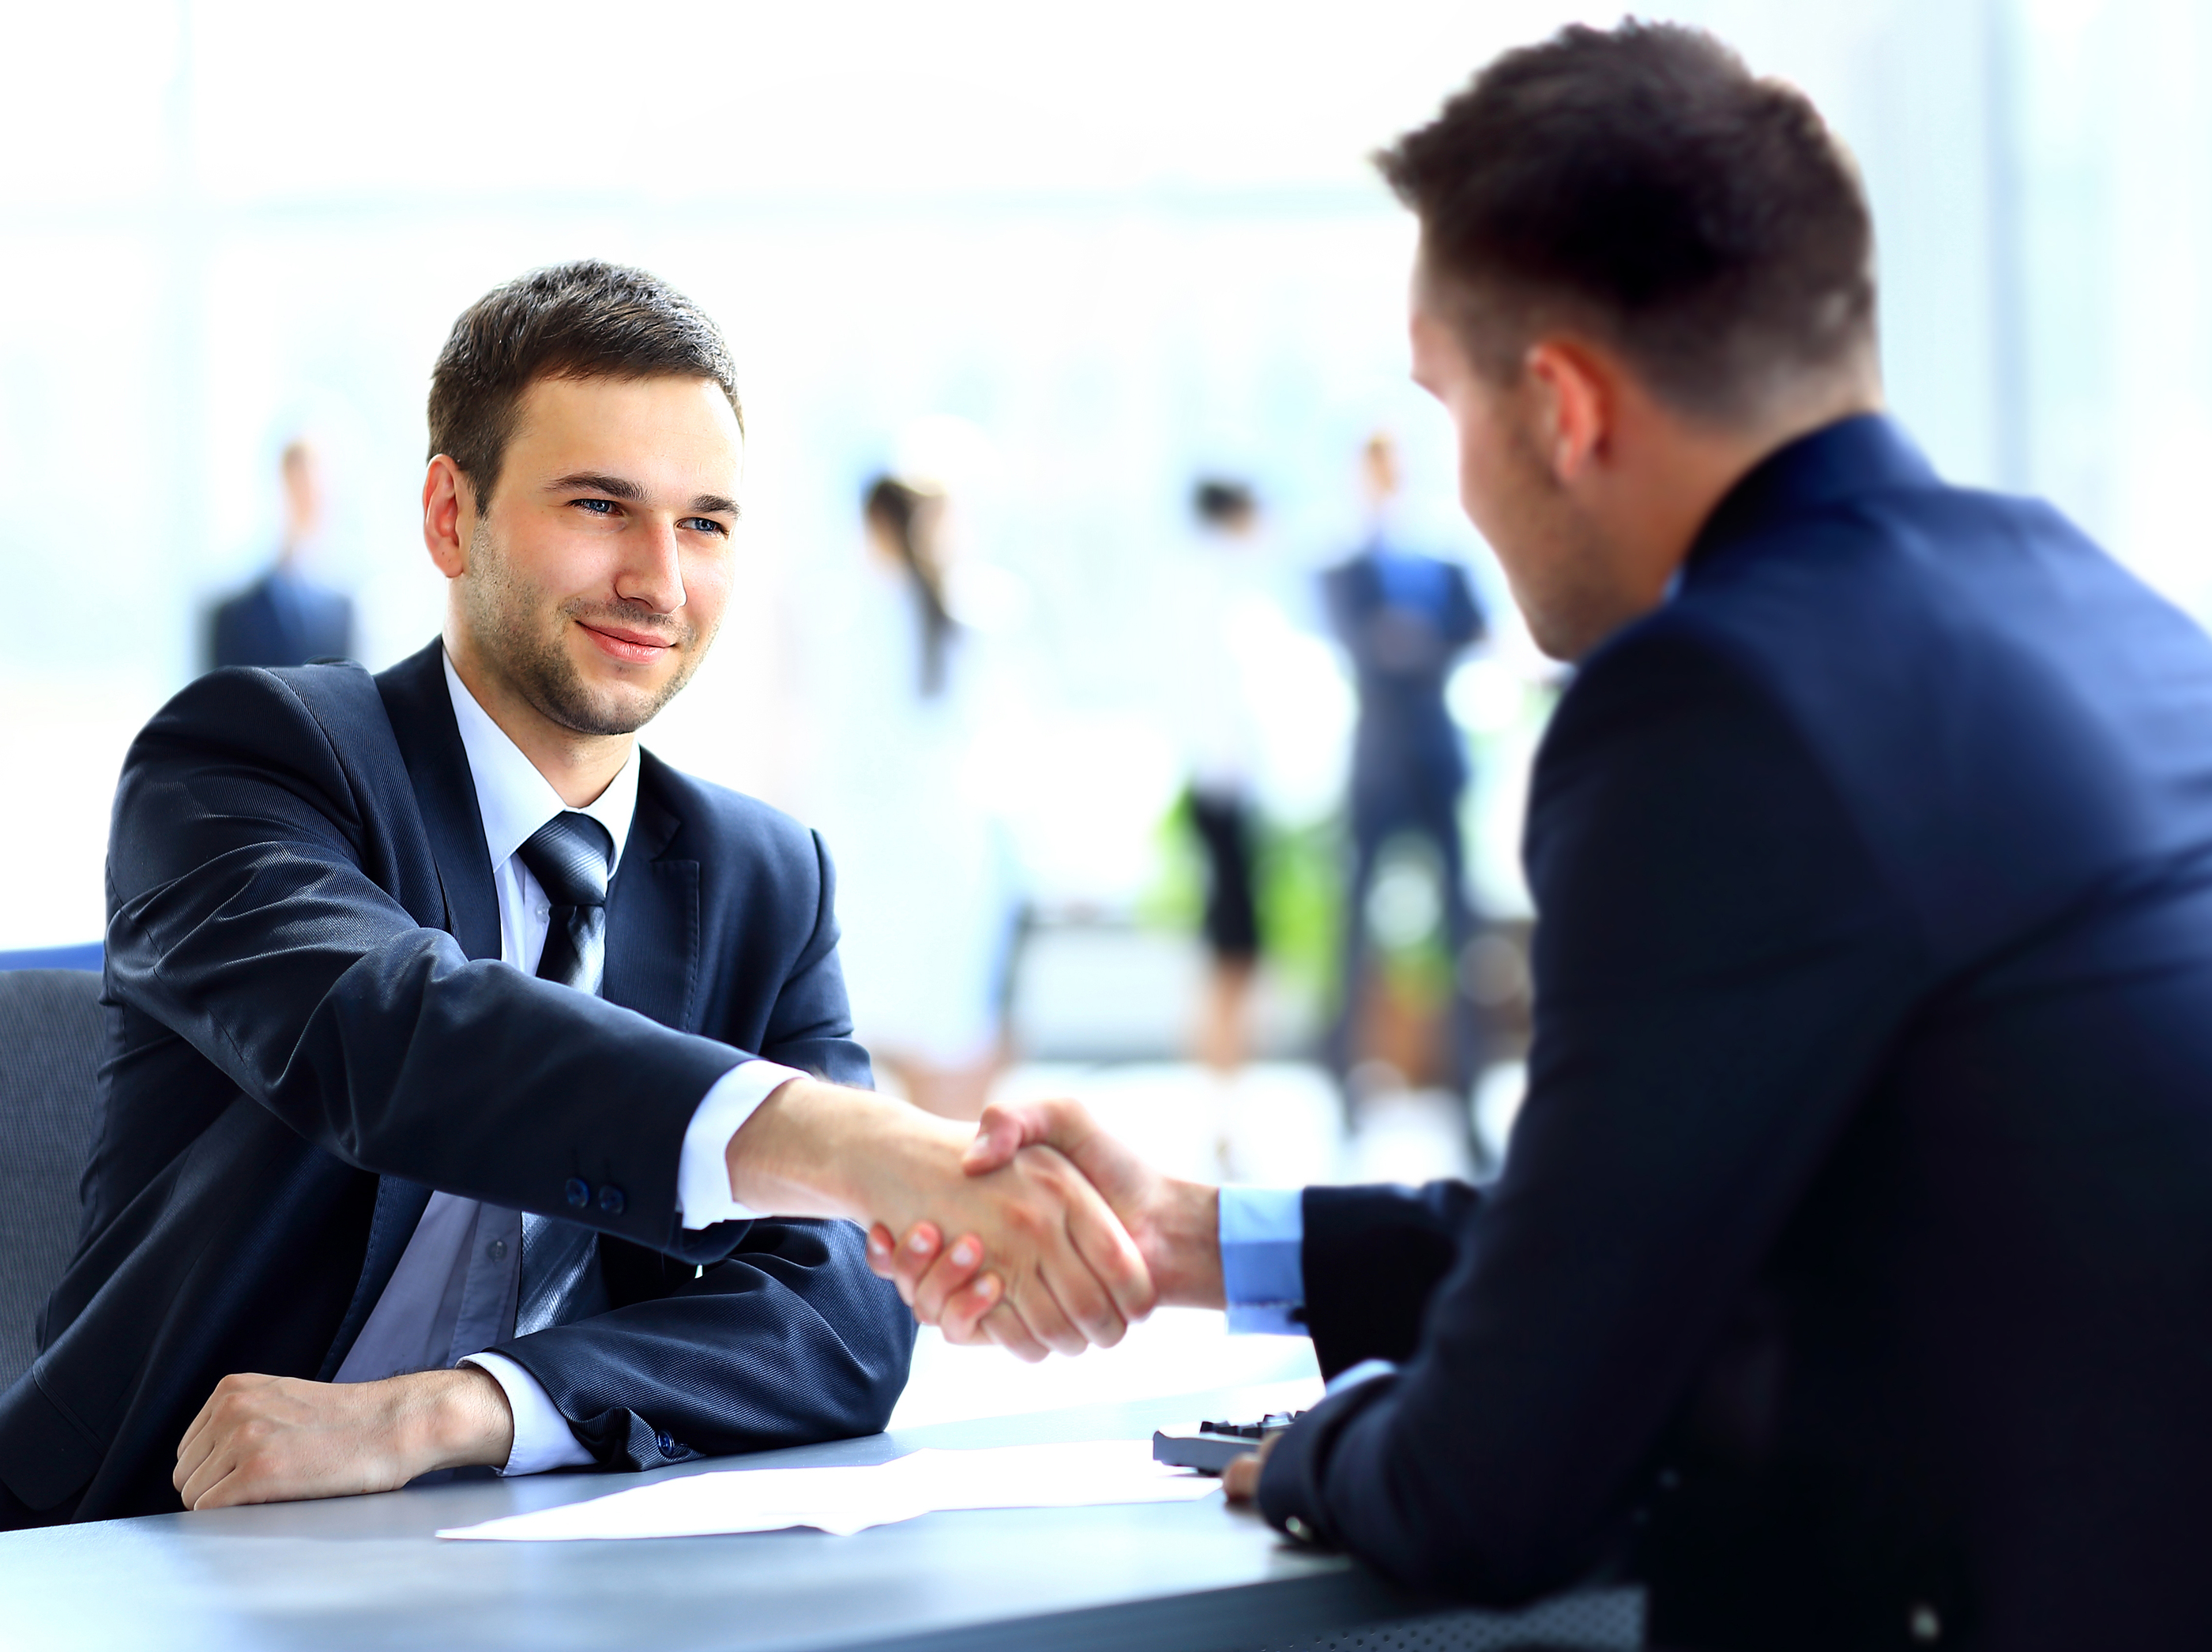 Two business colleagues shaking hands during meeting.jpg